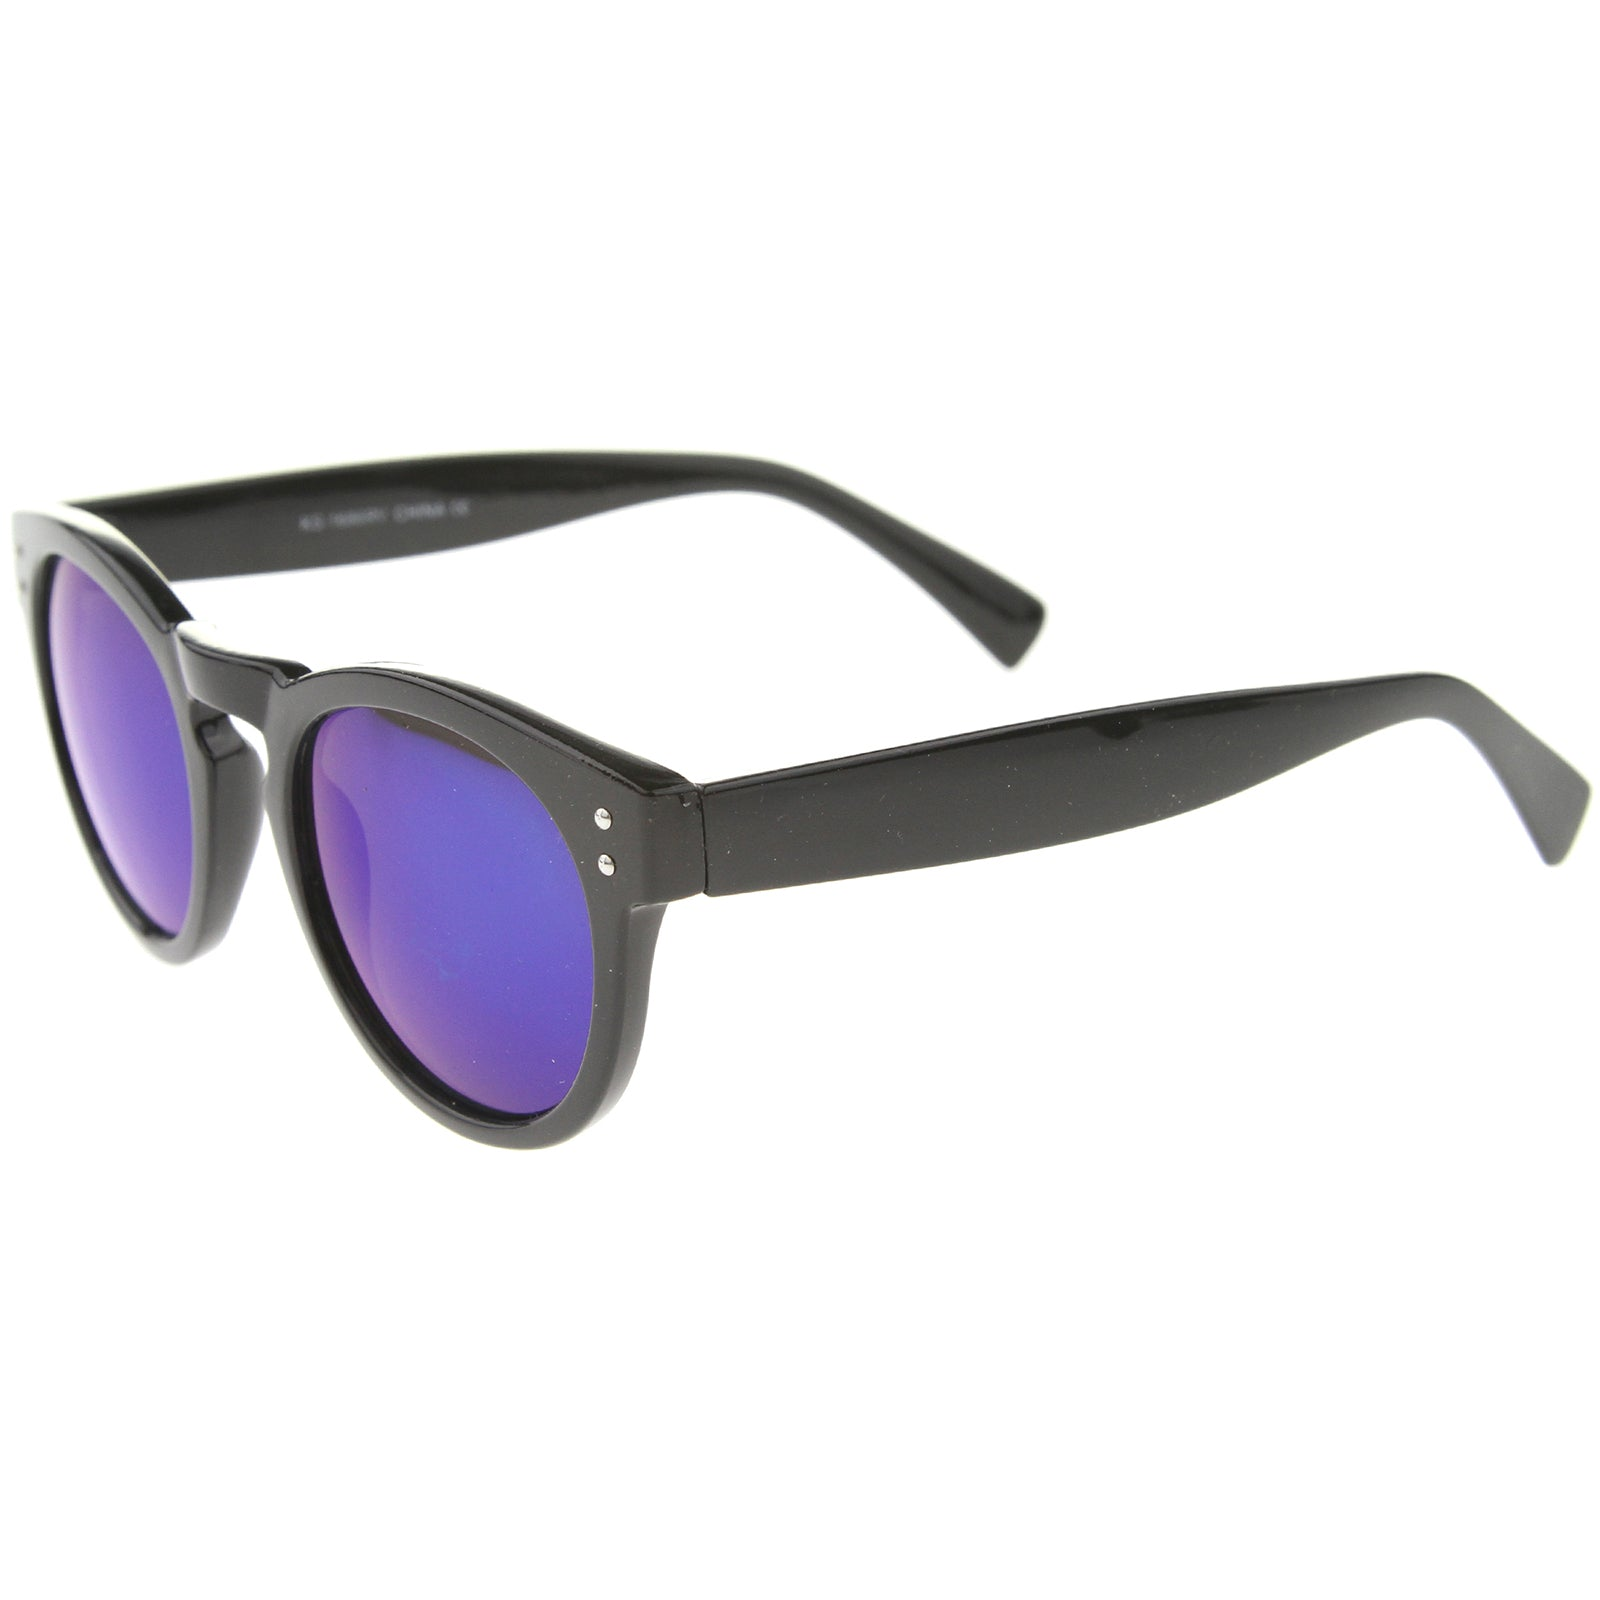 Womens Horn Rimmed Sunglasses With UV400 Protected Mirrored Lens - sunglass.la - 15